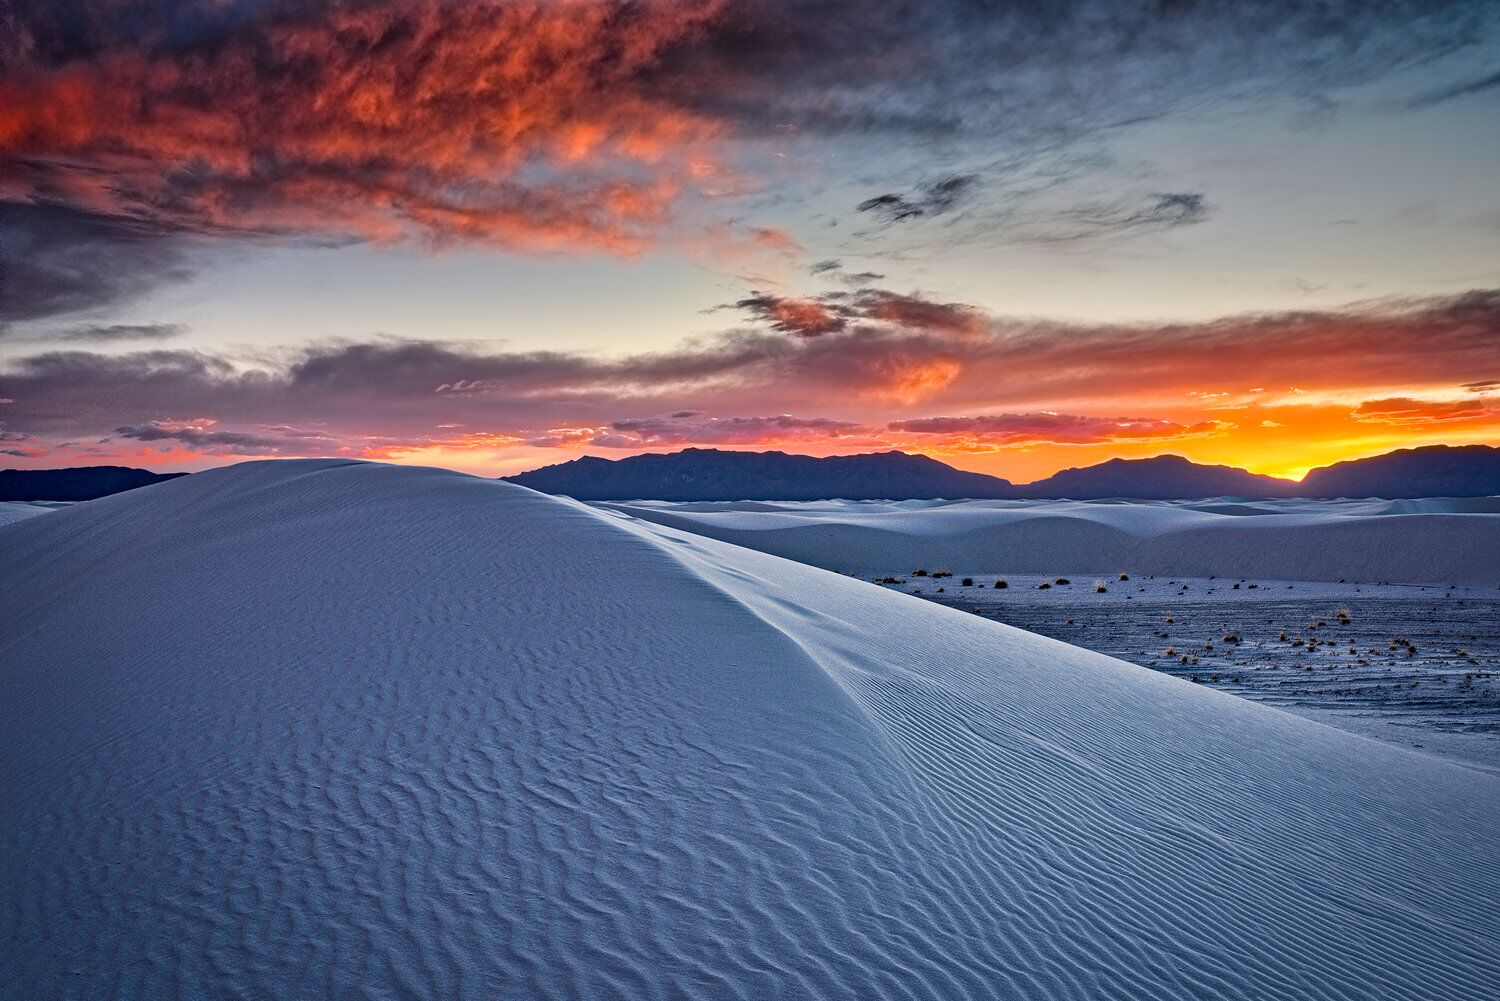 Red Sky and Dunes at Sunset, Autumn, White Sands National Monument, New Mexico